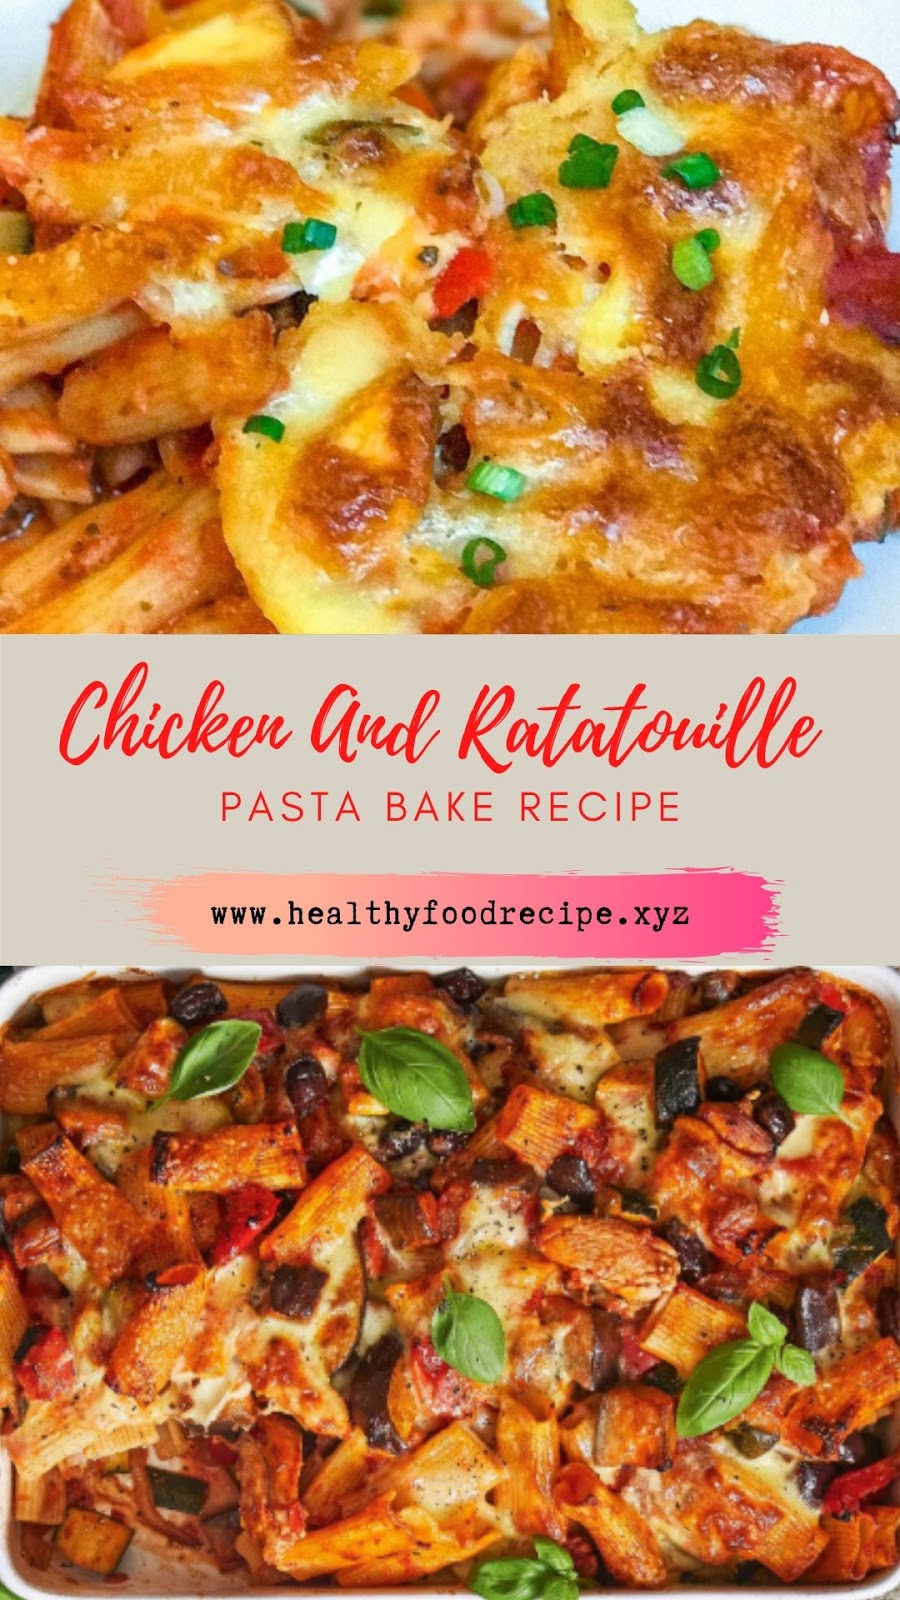 Chicken And Ratatouille Pasta Bake Recipe